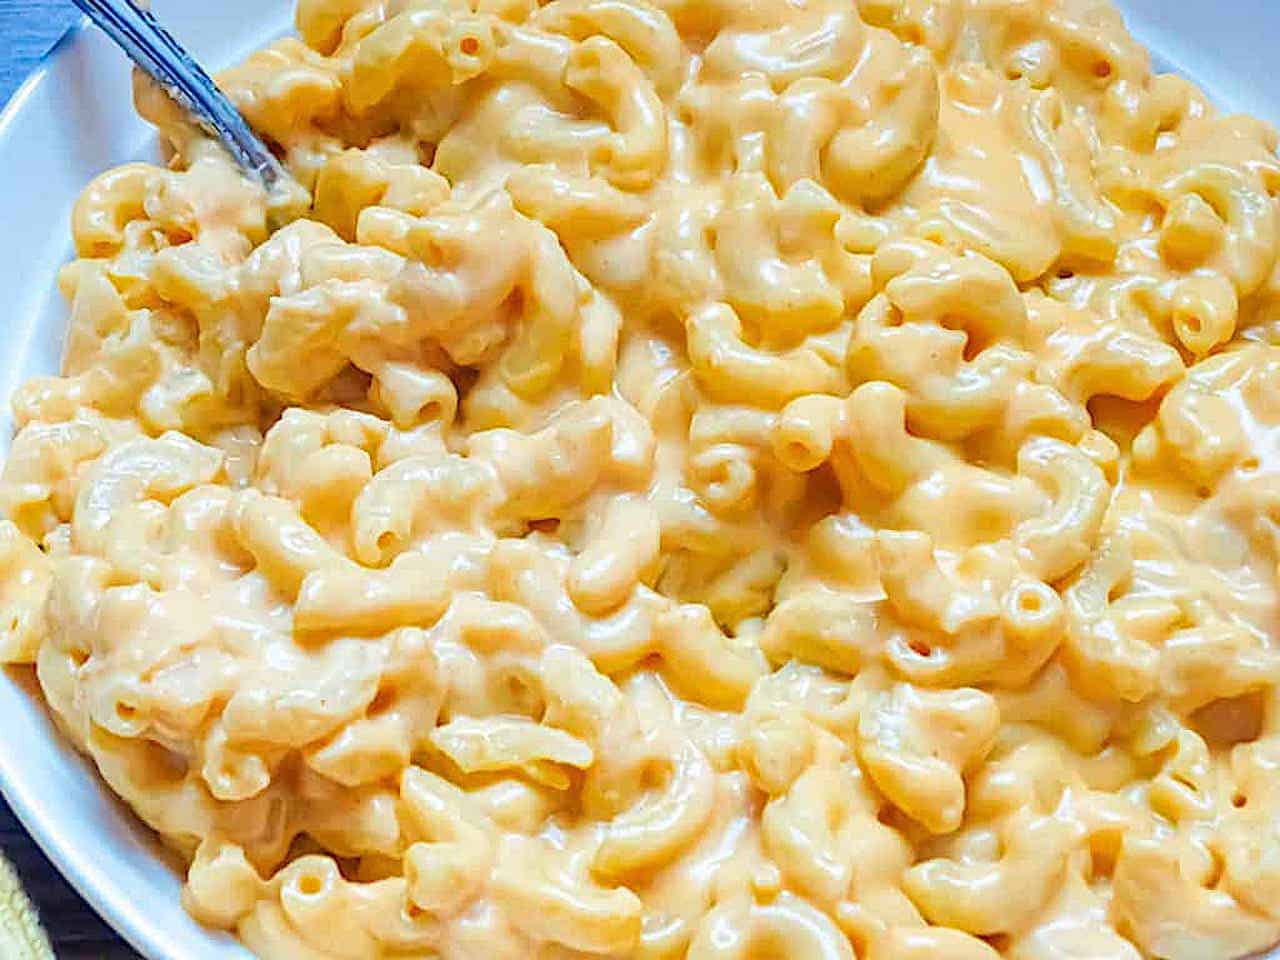 homemade creamy mac and cheese in a white bowl